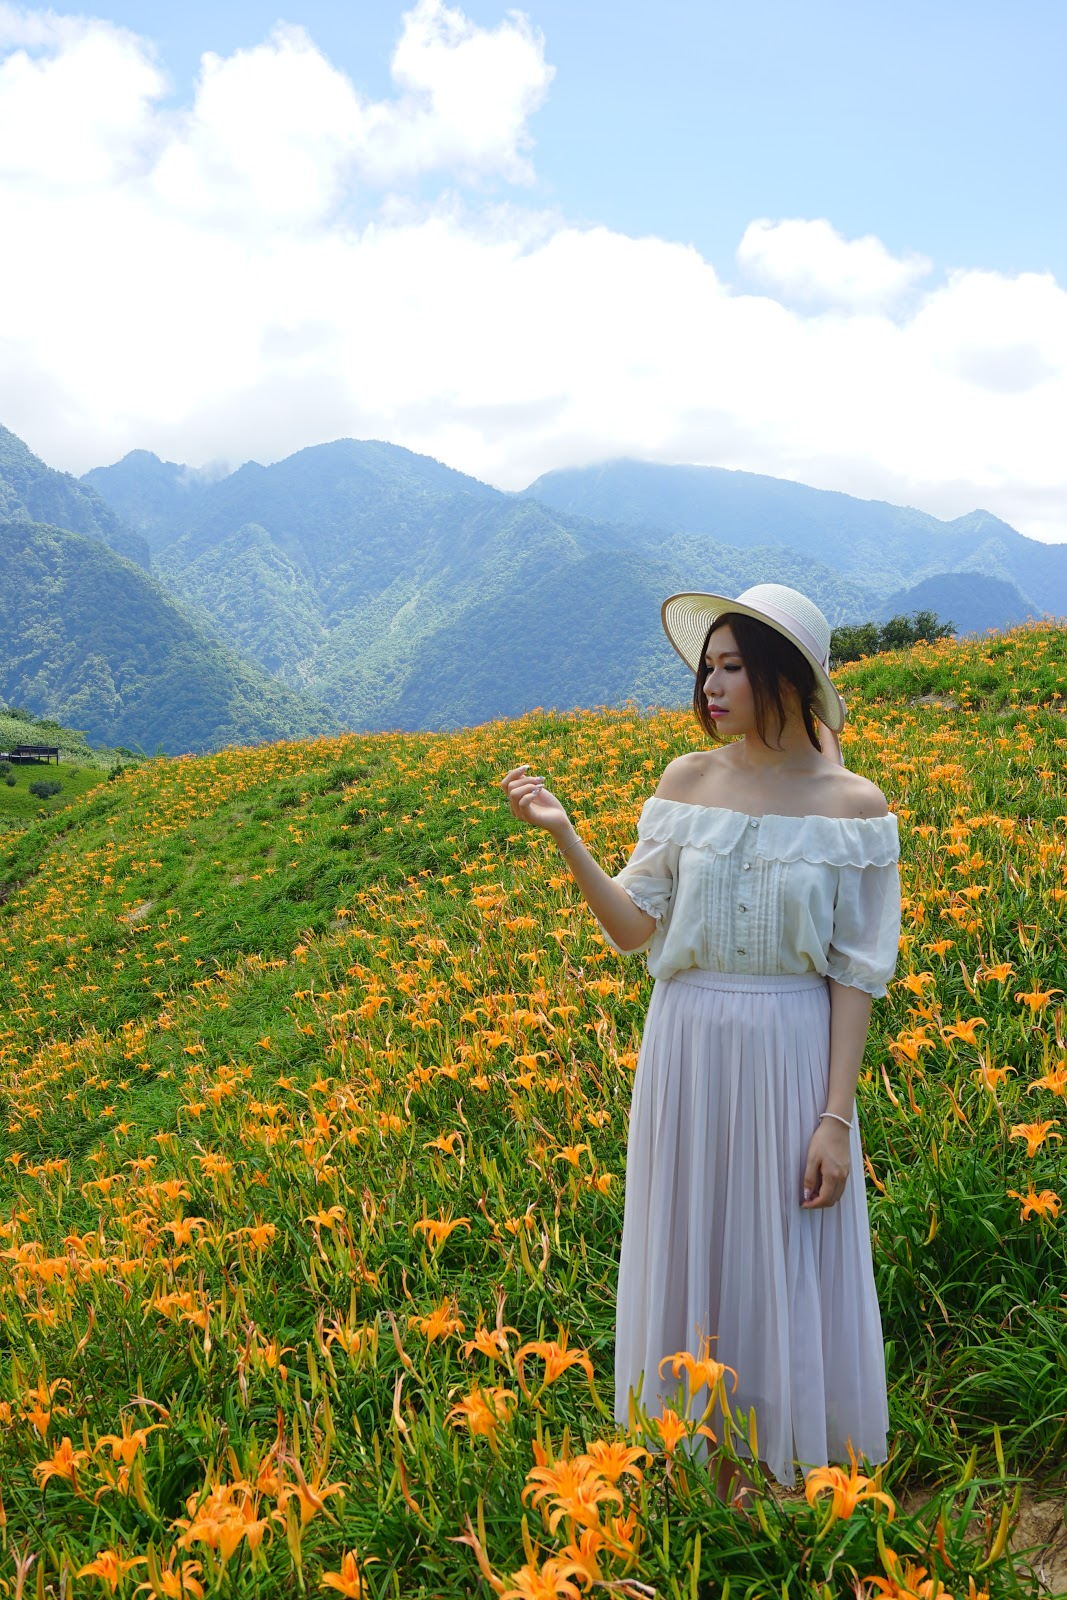 DSC00908-beautyanxiety.com-hualien-travel-liushidan-mountain-daylily-flowers